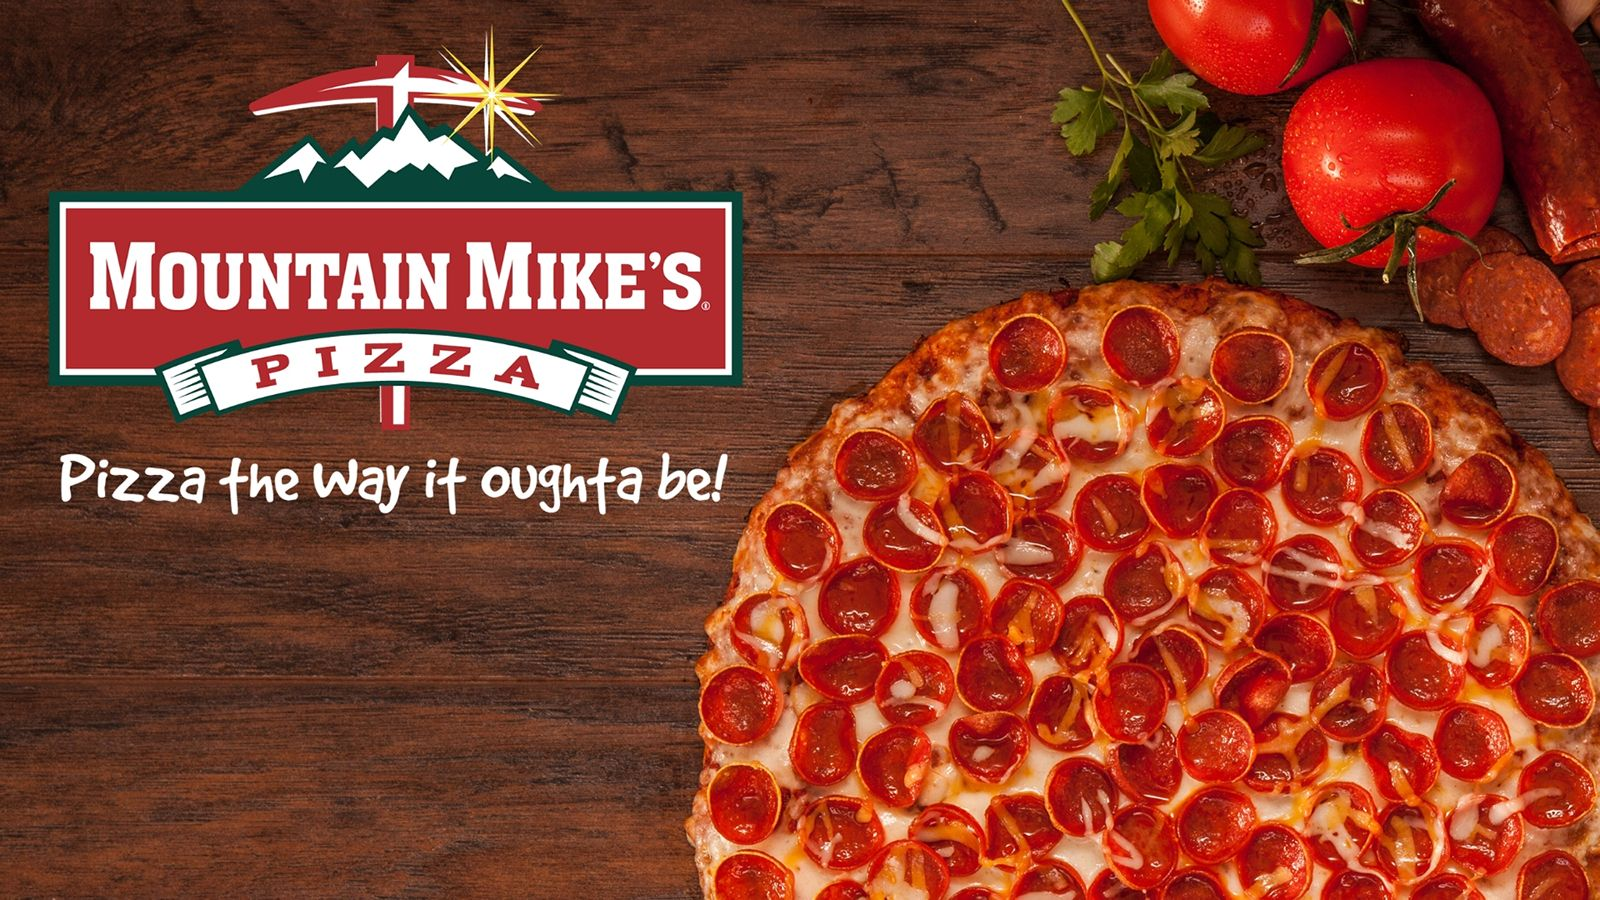 Mountain Mike's Pizza Expands in Orange County